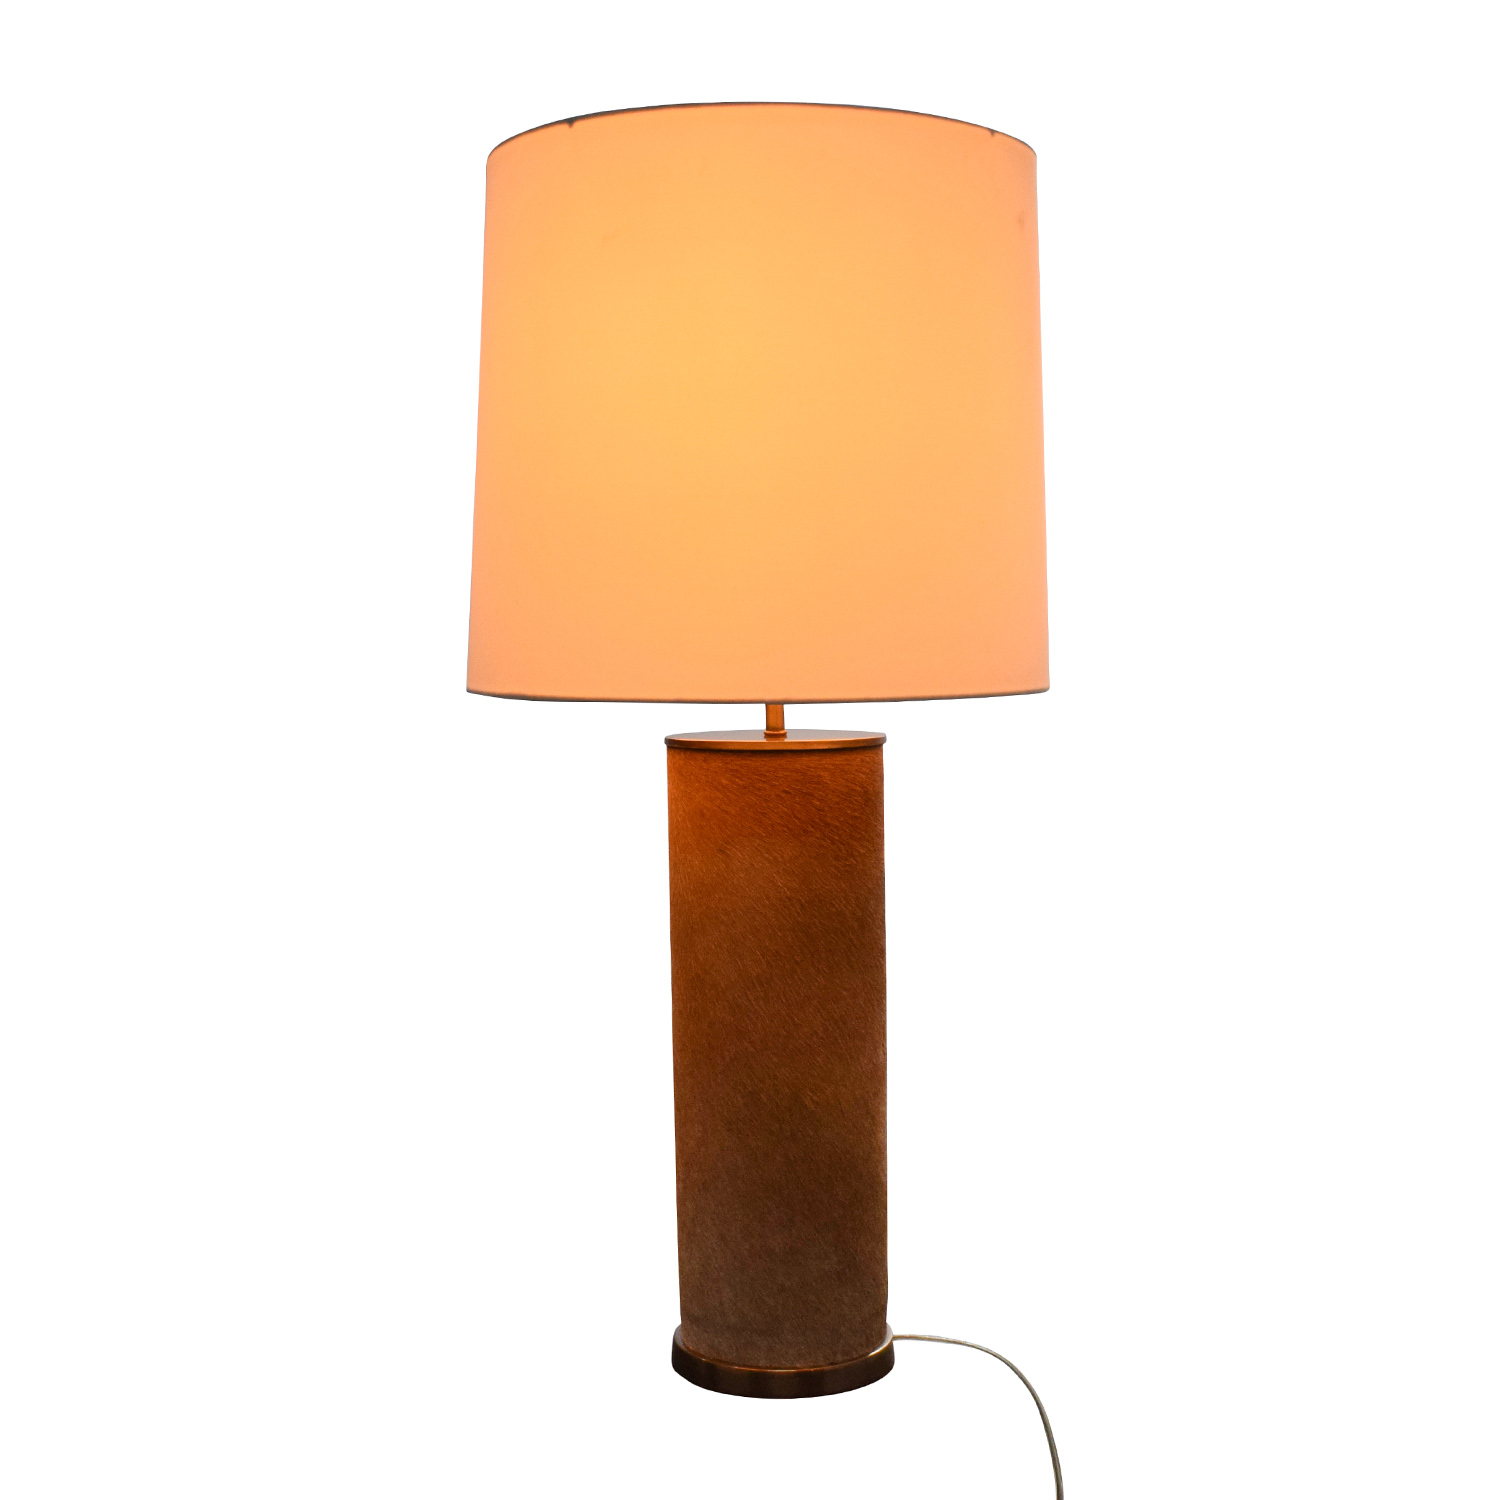 Crate and Barrel Crate & Barrel Table Lamp Lamps